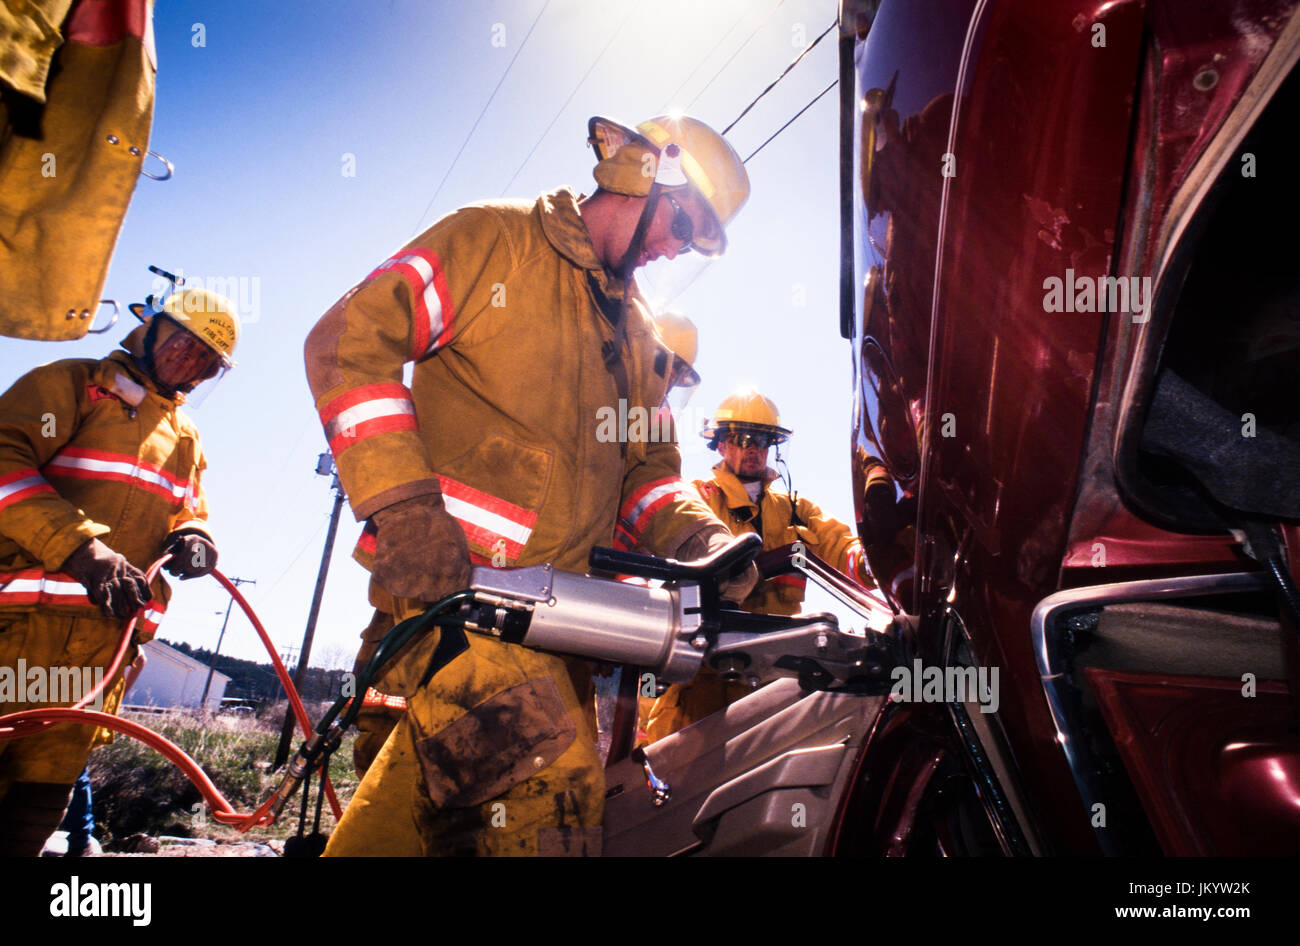 South Dakota firefighters take part in victim extrication training during a motor vehicle crash scenario using hydraulic - Stock Image